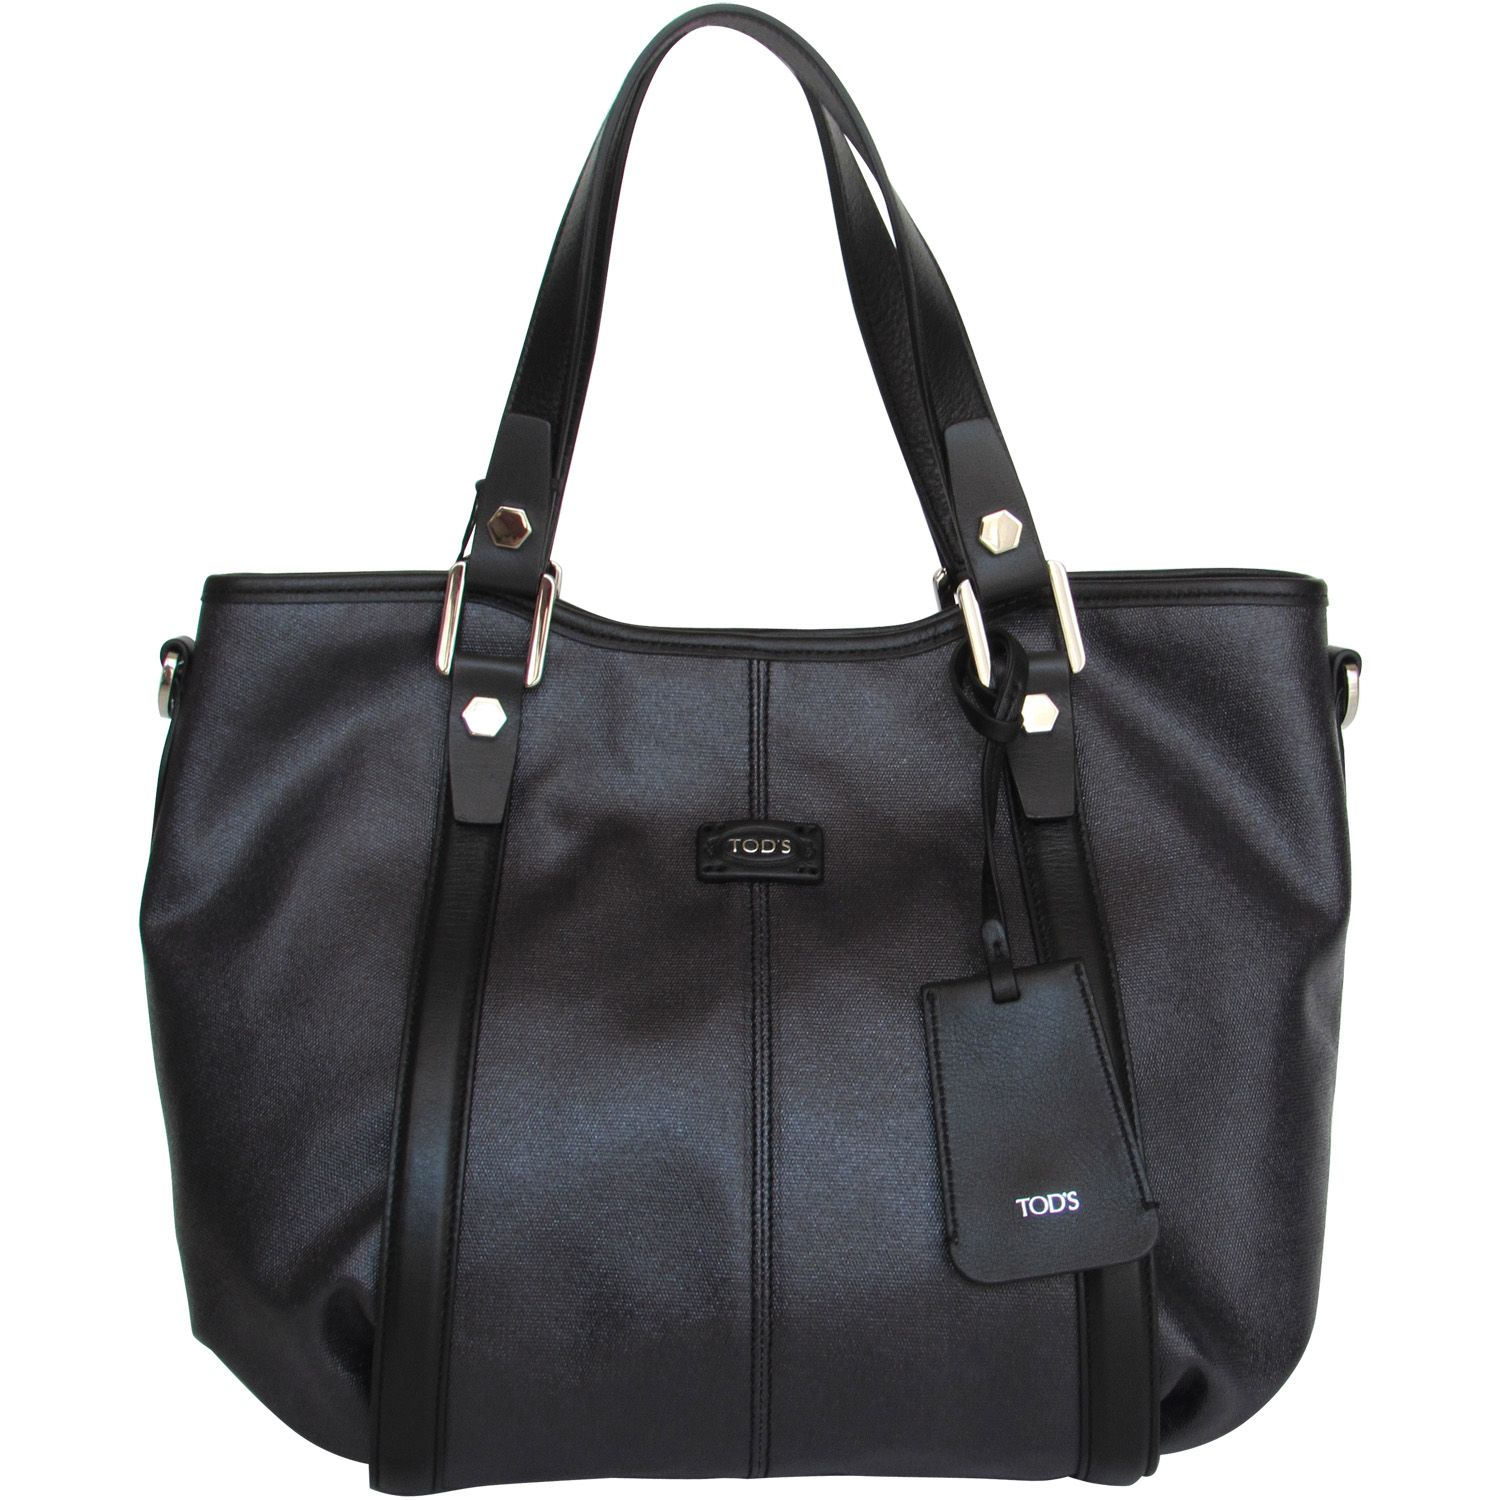 Tod's bag sale www.airfashion.it/070215190236/bags-leather/BORSE